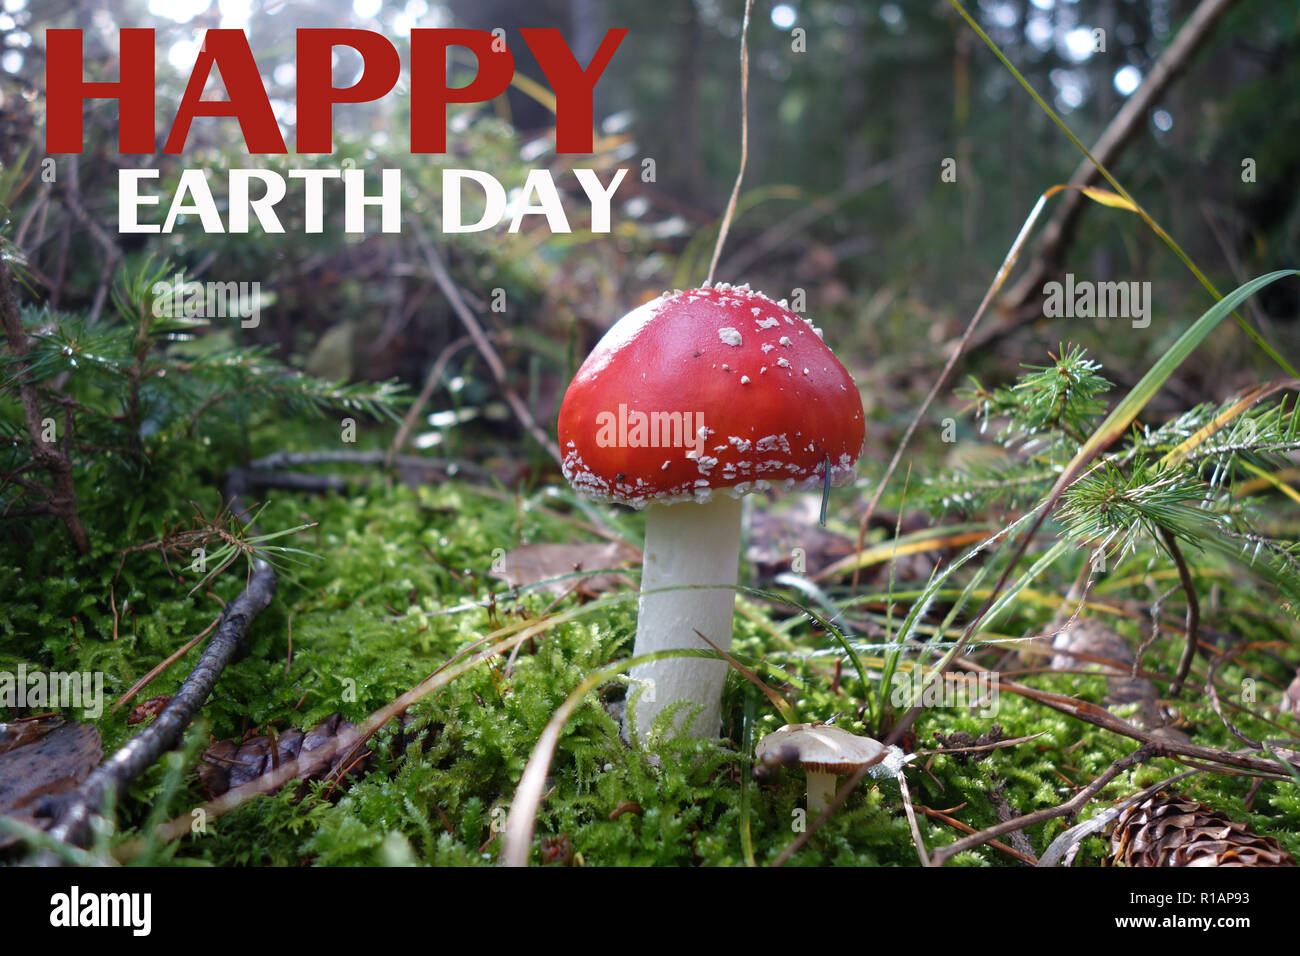 HAPPY EARTH DAY - Stock Image